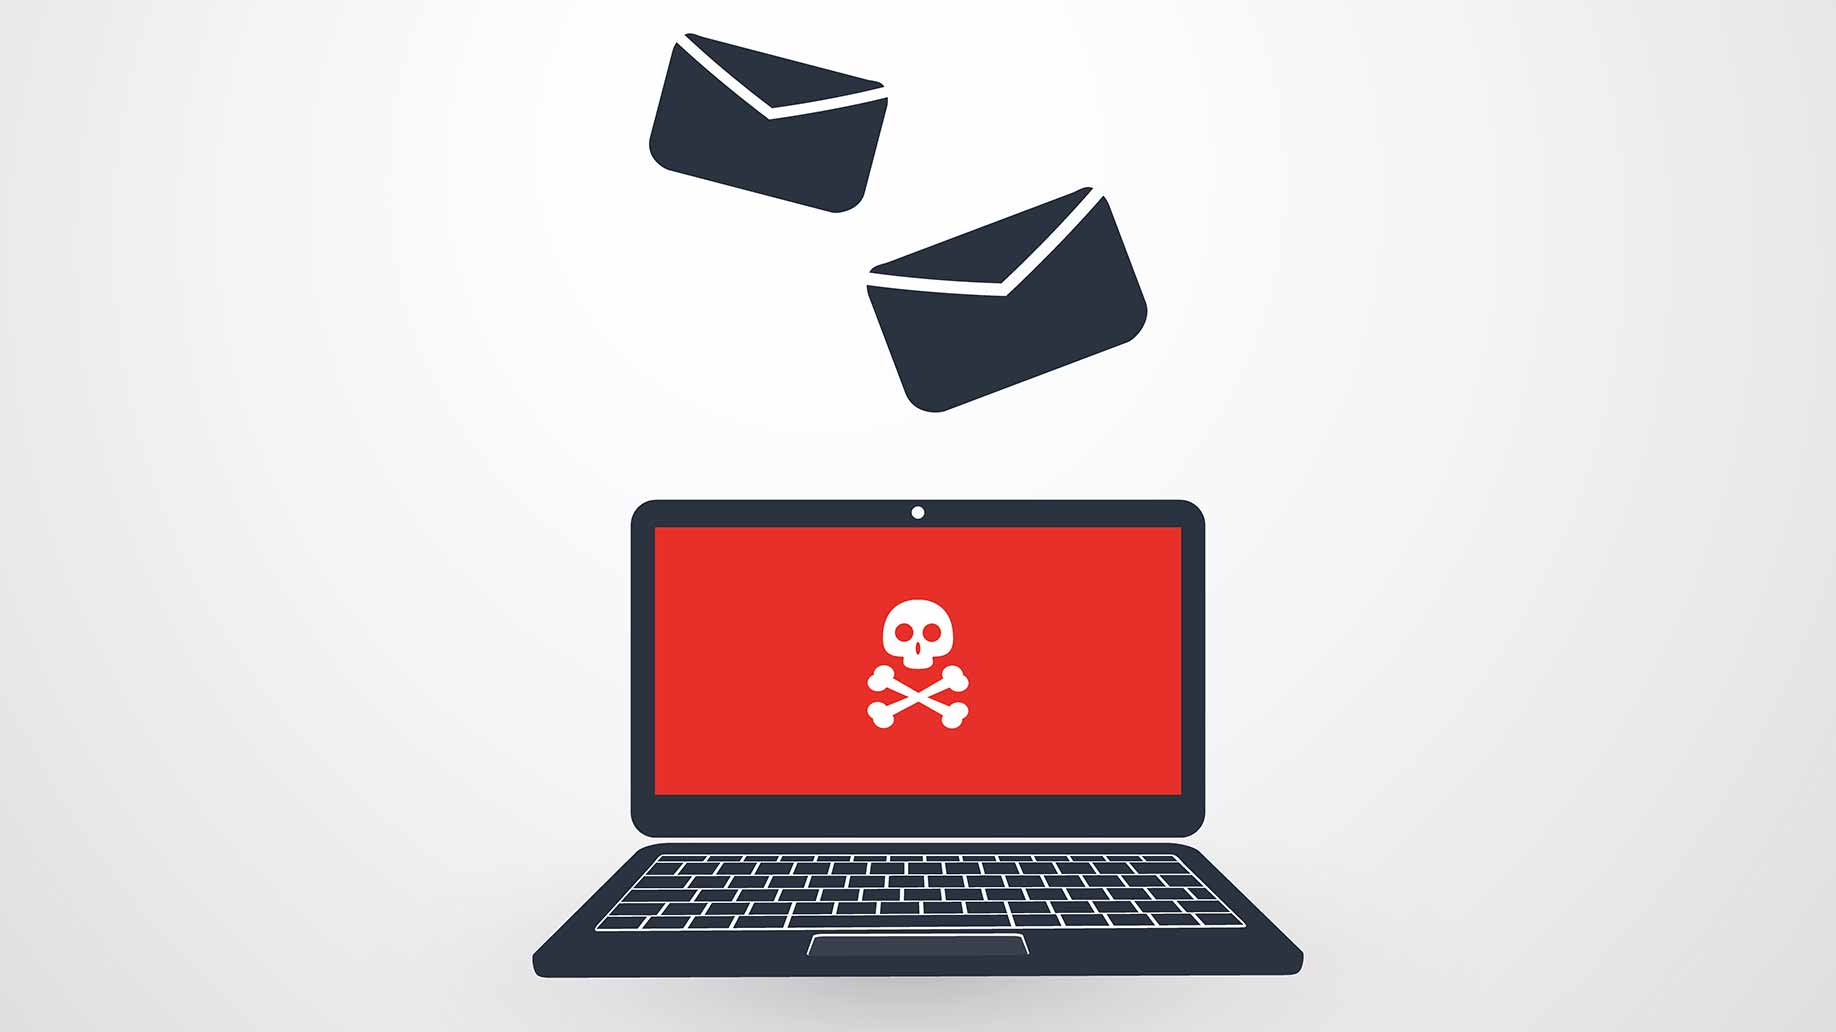 illustration of a computer screen with skull and crossbones showing spam e-mail